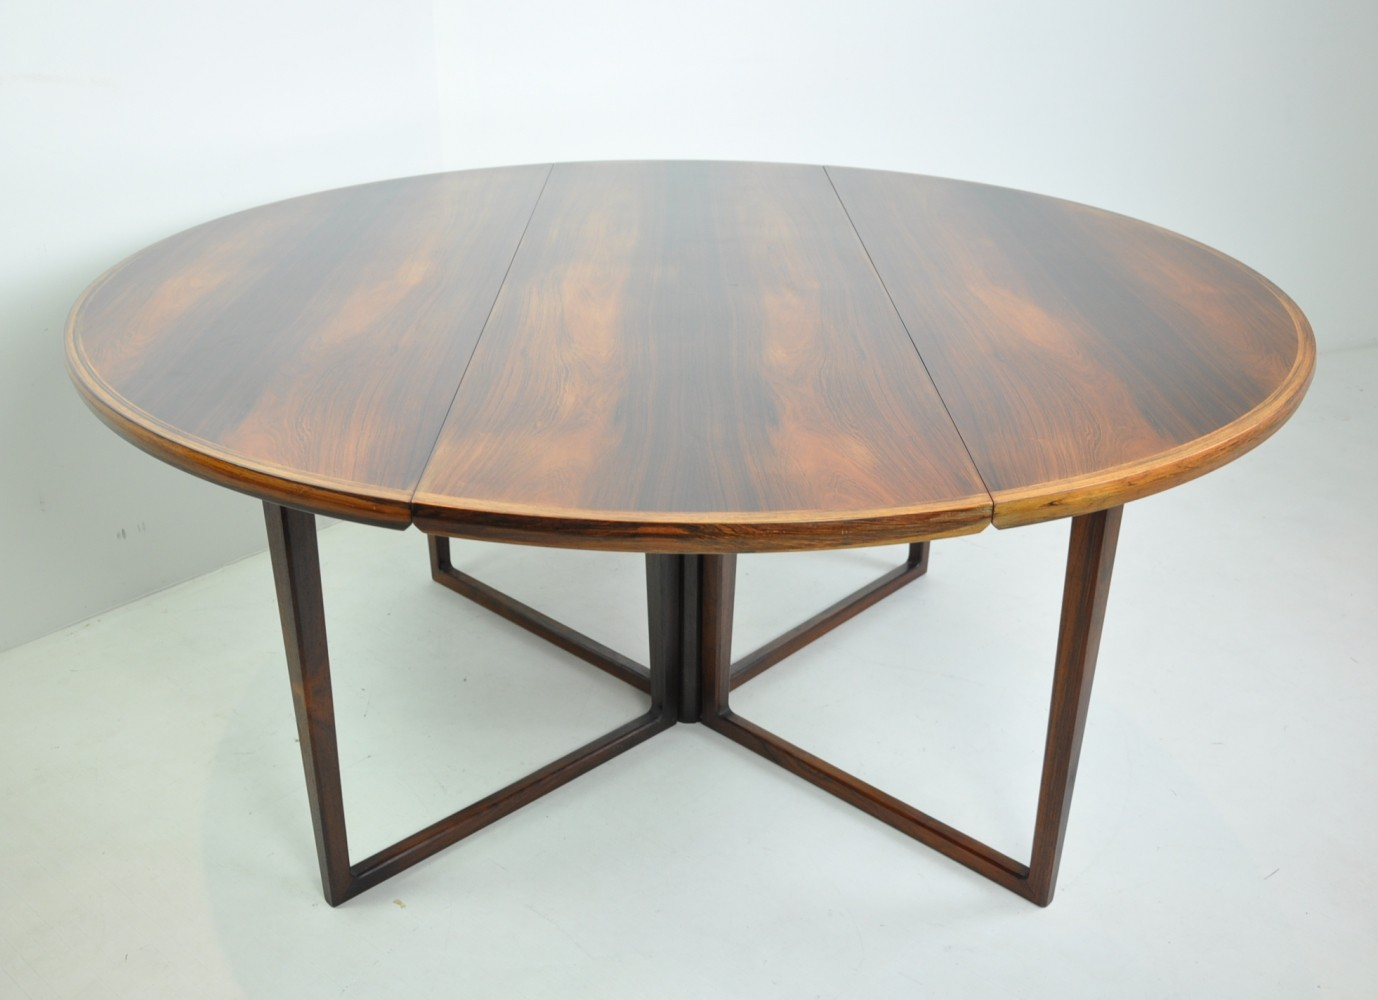 Round Dining Table in Rosewood by Helge Sibast, Denmark 1950s